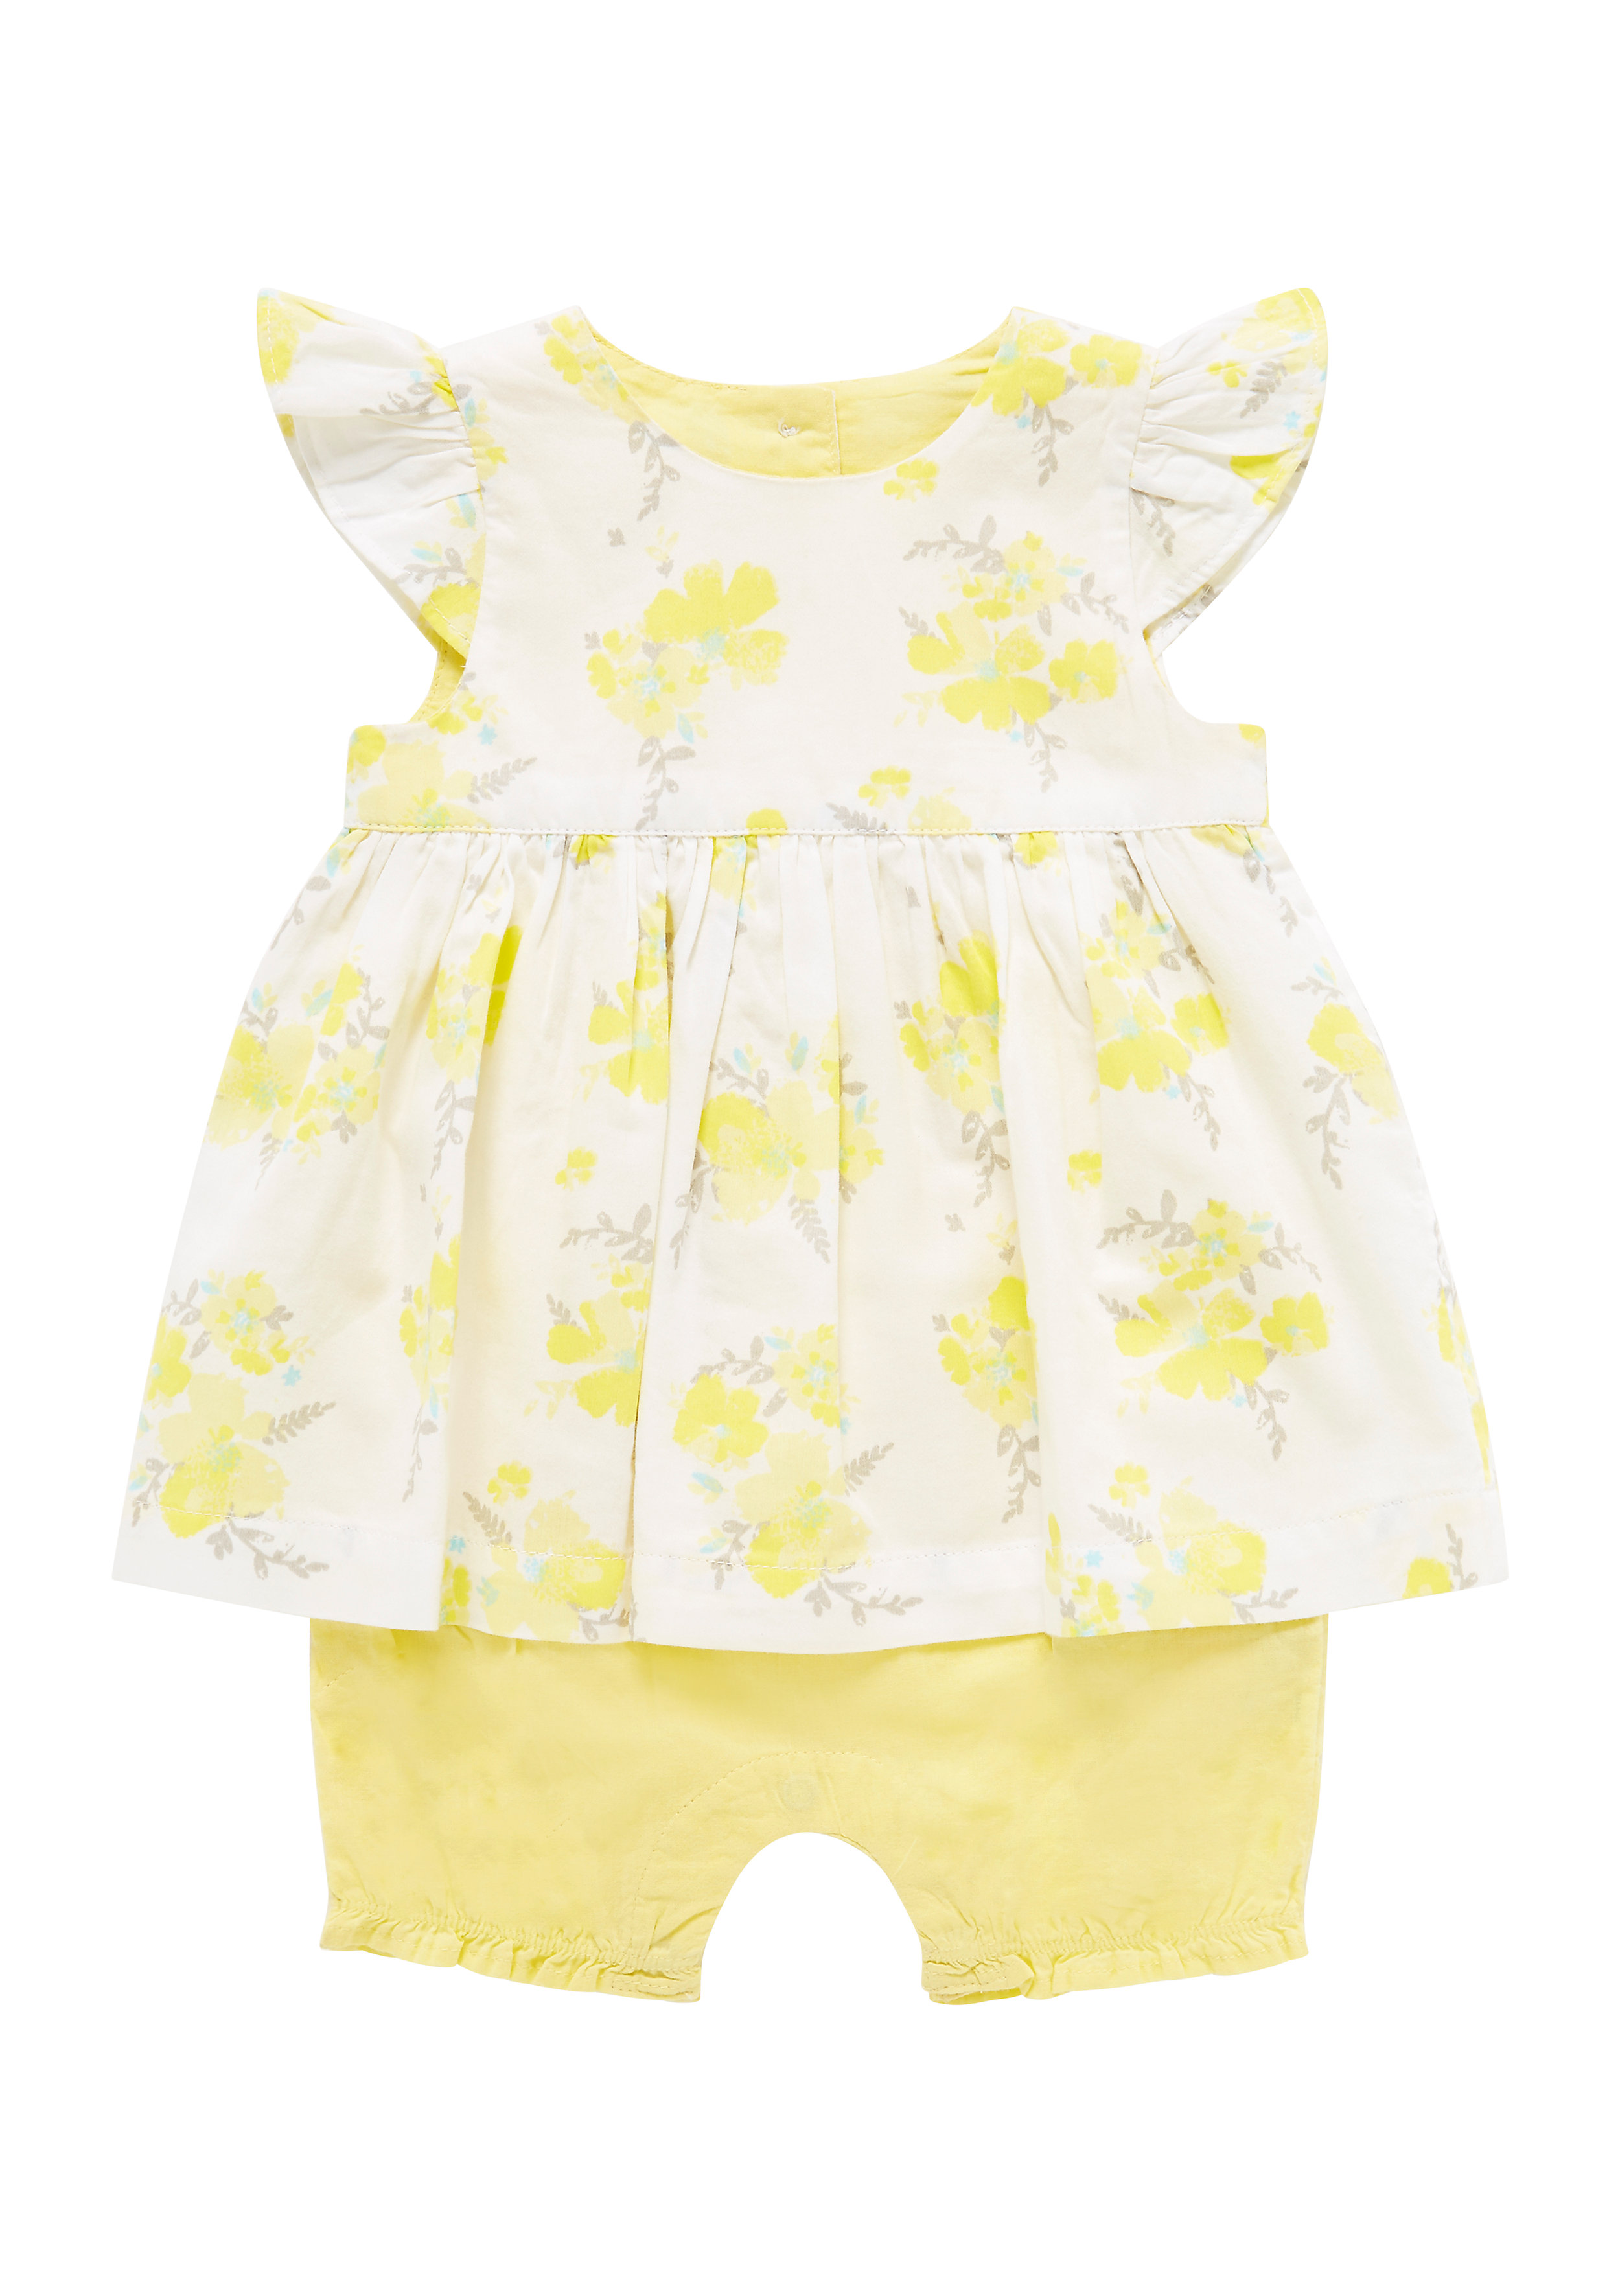 Mothercare | Girls Floral Romper - Yellow